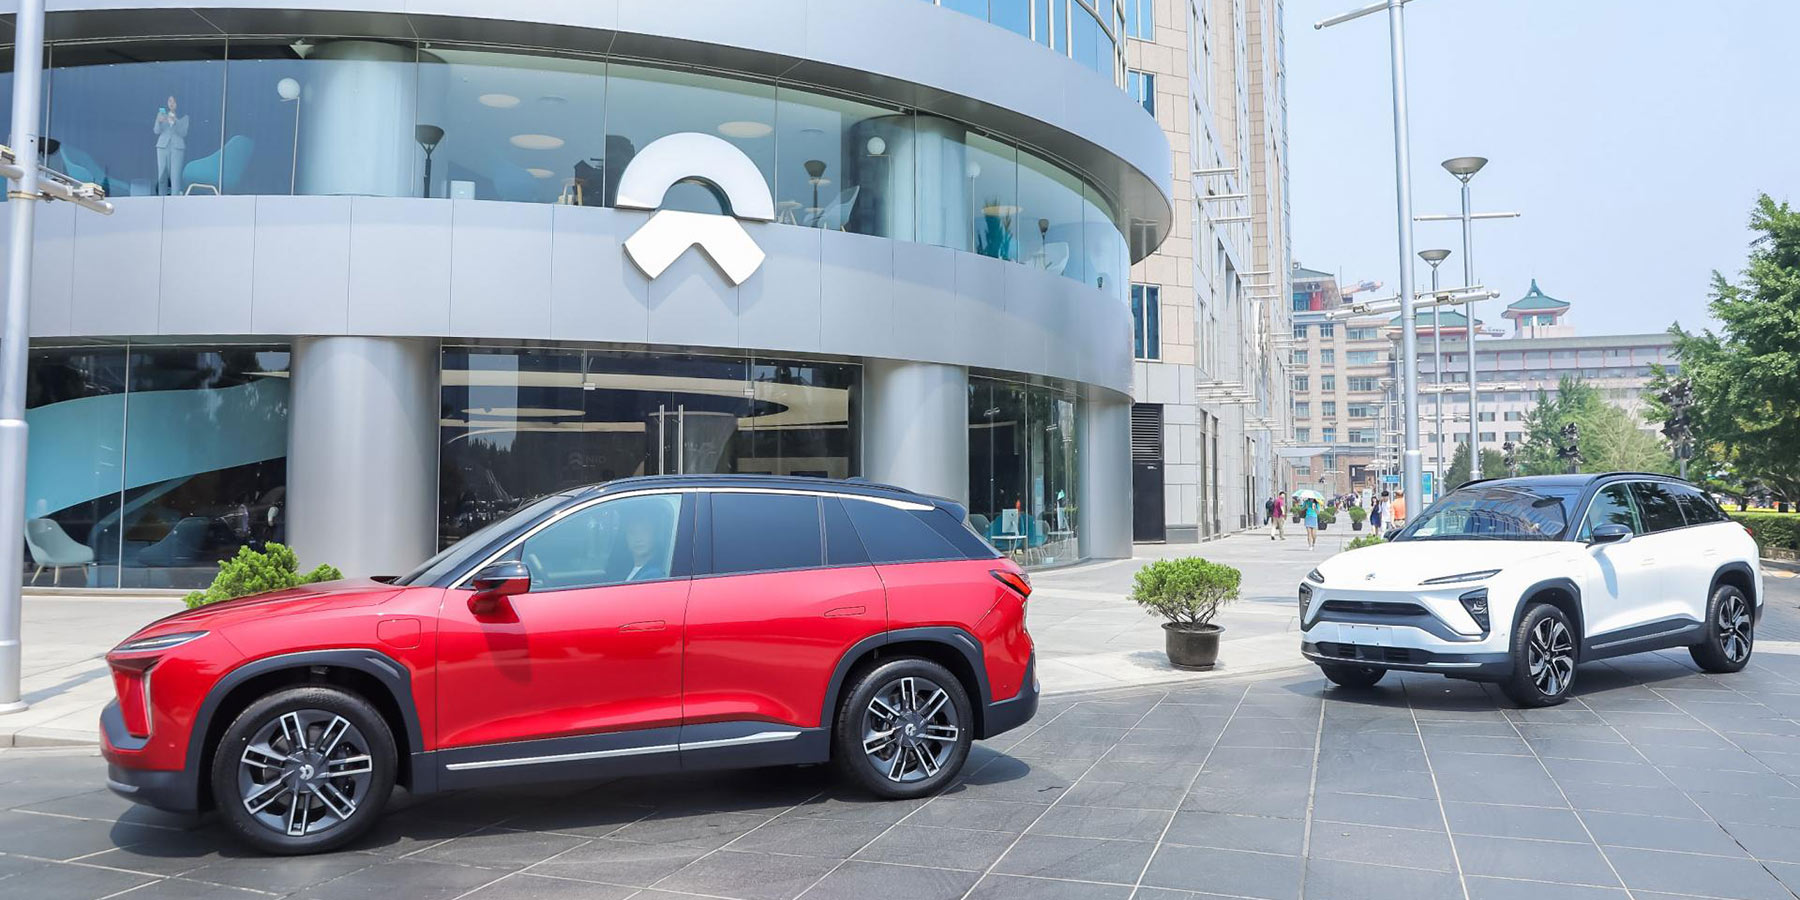 Investment rumors swirl as Chinese EV-maker Nio seeks financial help - Electrek